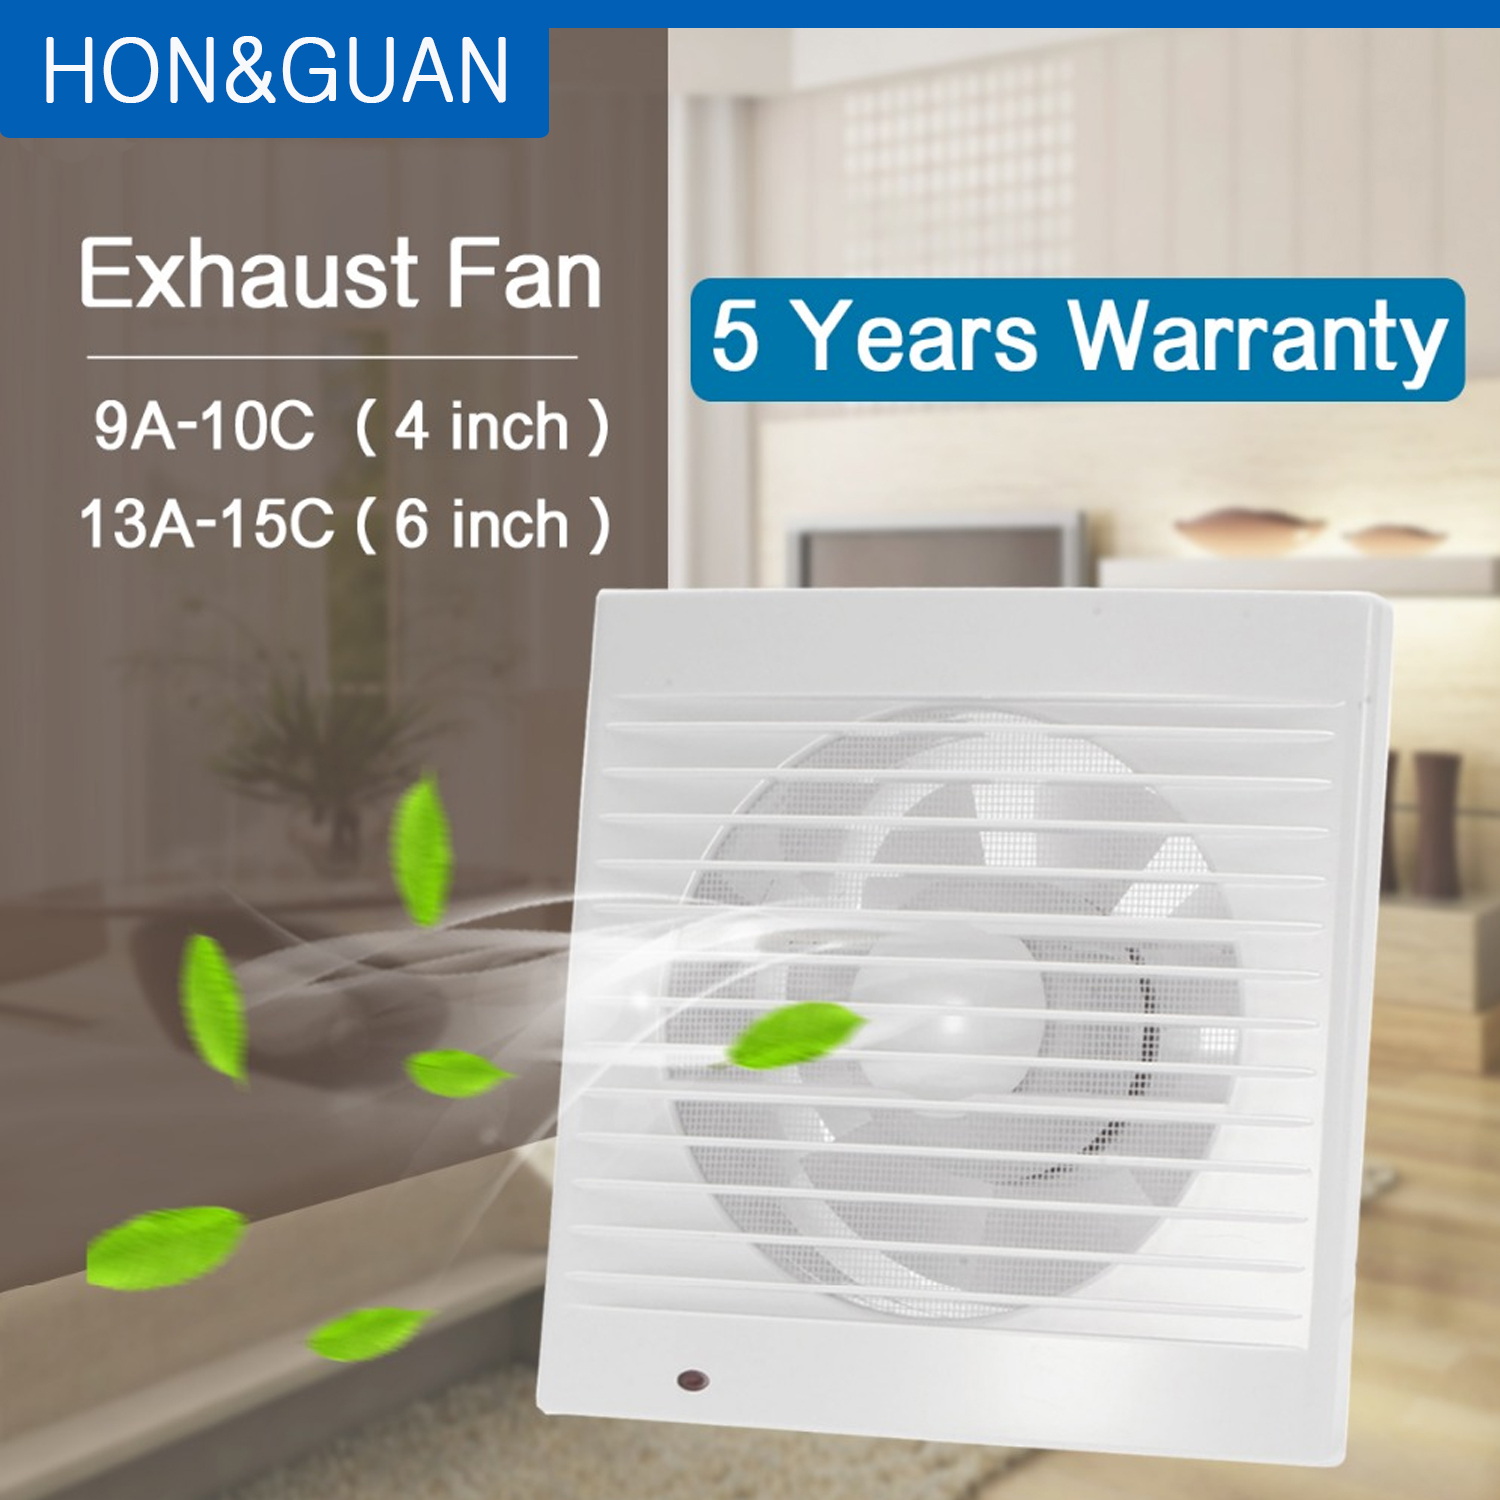 14W silence Ventilating Exhaust Extractor Fan for Window Wall Bathroom Toilet Kitchen Mounted 220V 110V insect prevention 4